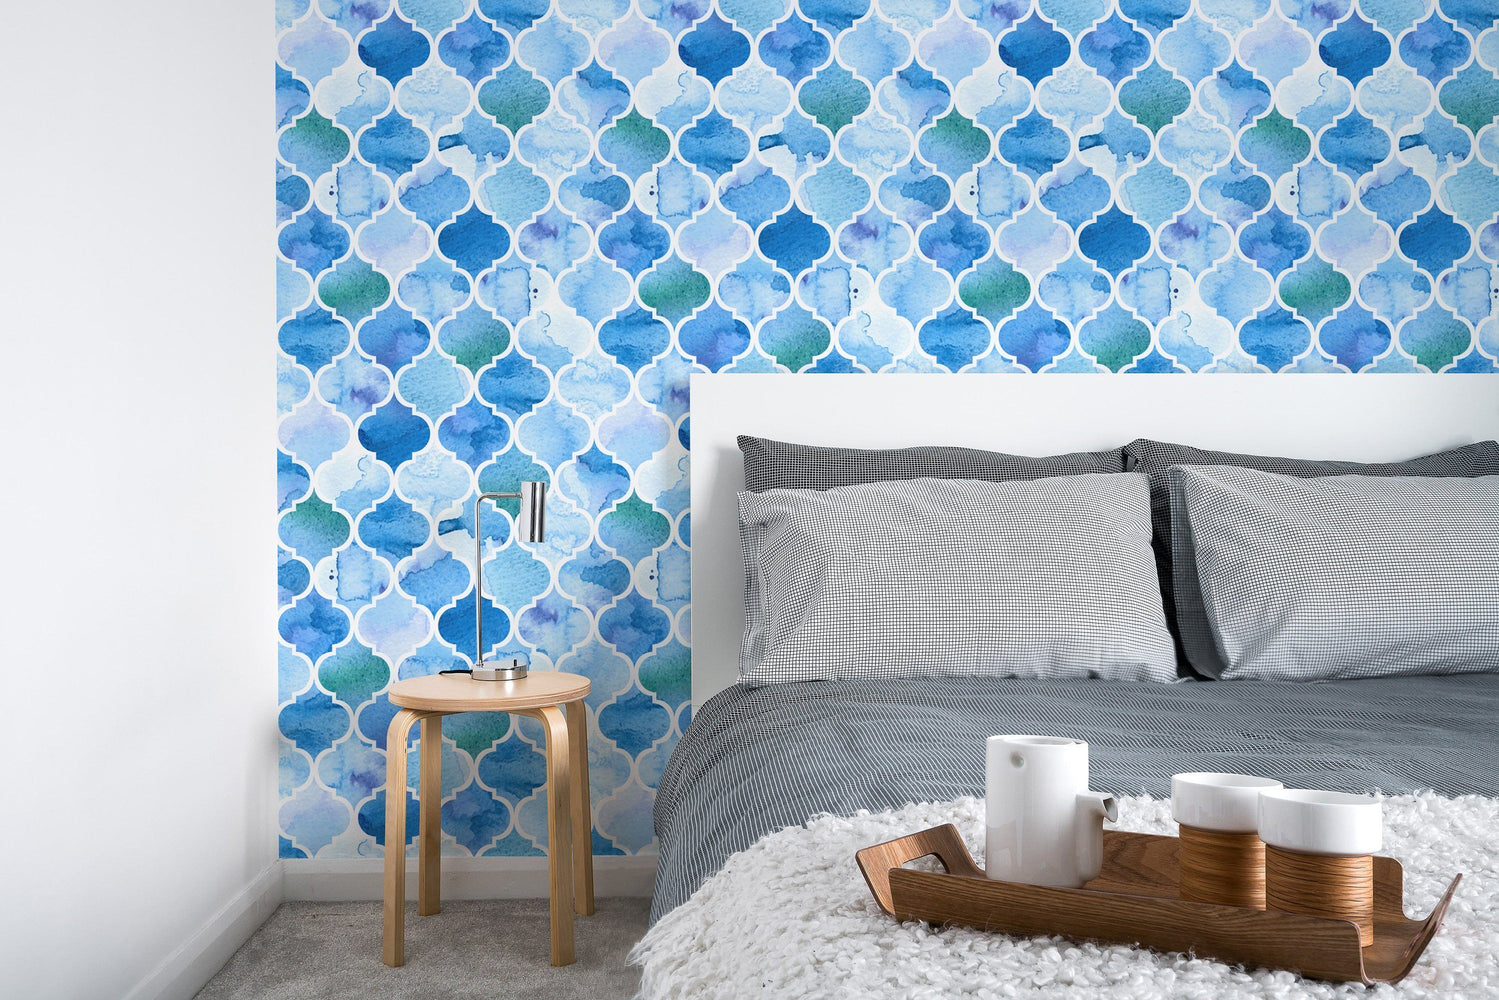 Watercolor Wallpaper - Watercolor Moroccan